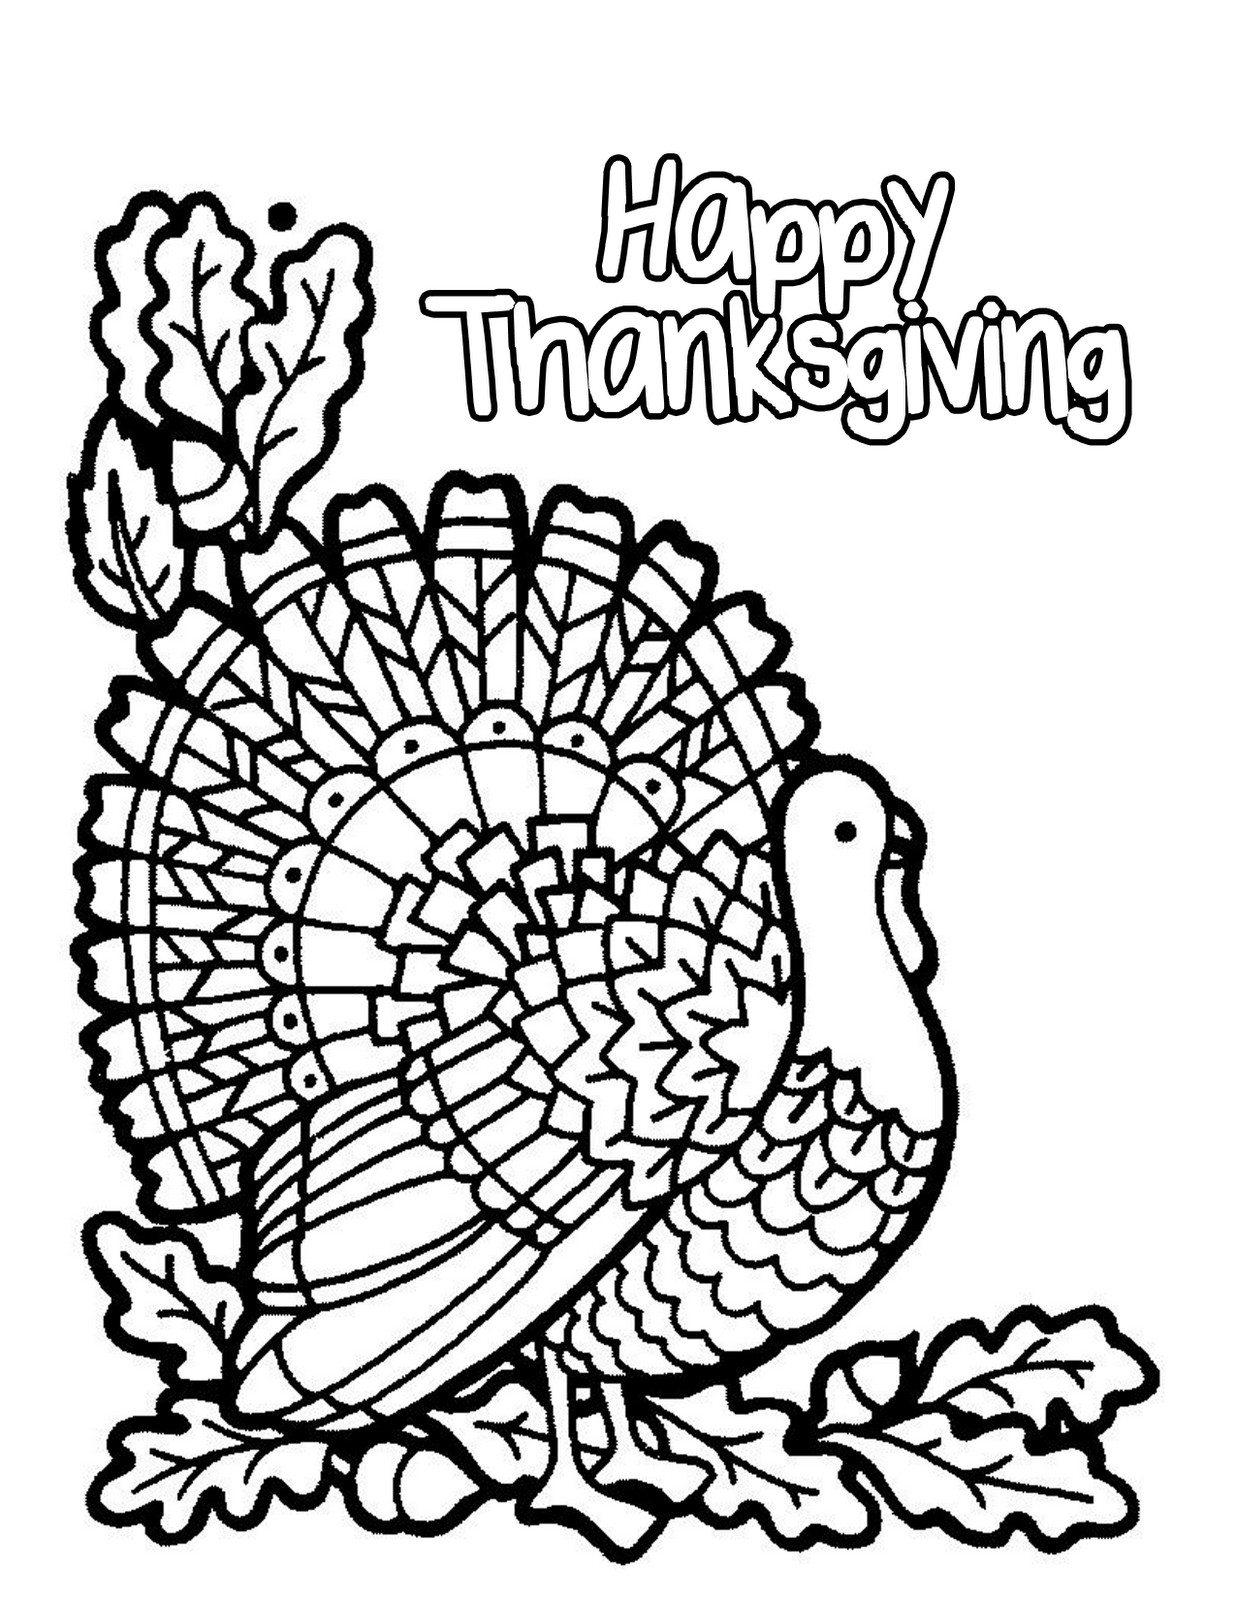 tanksgiving coloring pages - photo#16